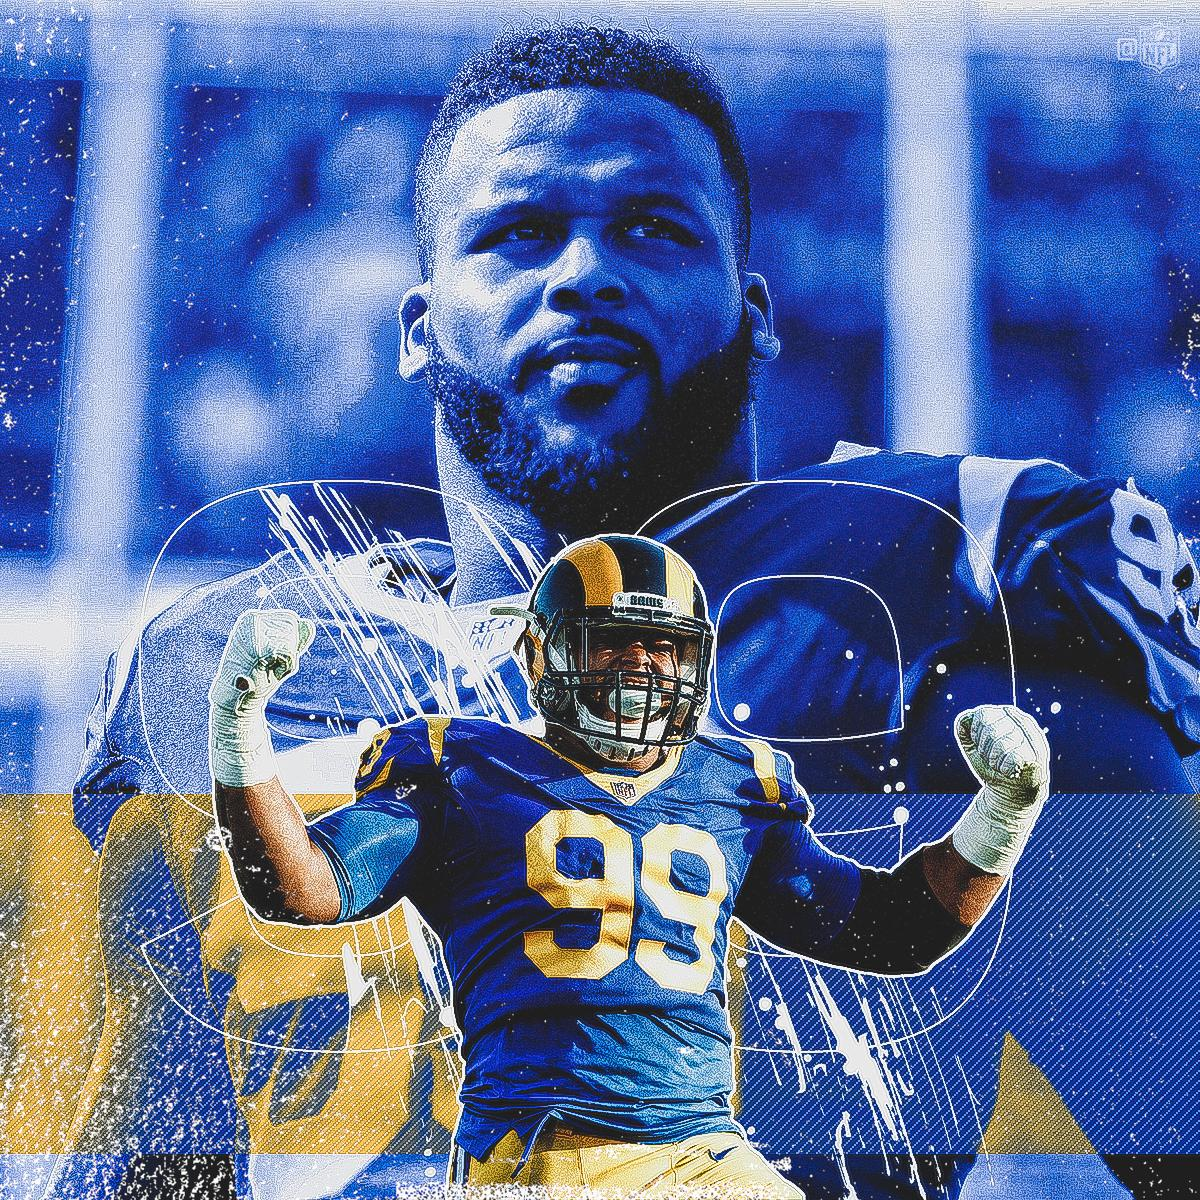 HAPPY BIRTHDAY to @RamsNFL star @AaronDonald97!  Back-to-back Defensive Player of the Year  All-Pro in four of his five NFL seasons  59.5 career sacks + 97.0 career TFL <br>http://pic.twitter.com/iihkQ7yIAI